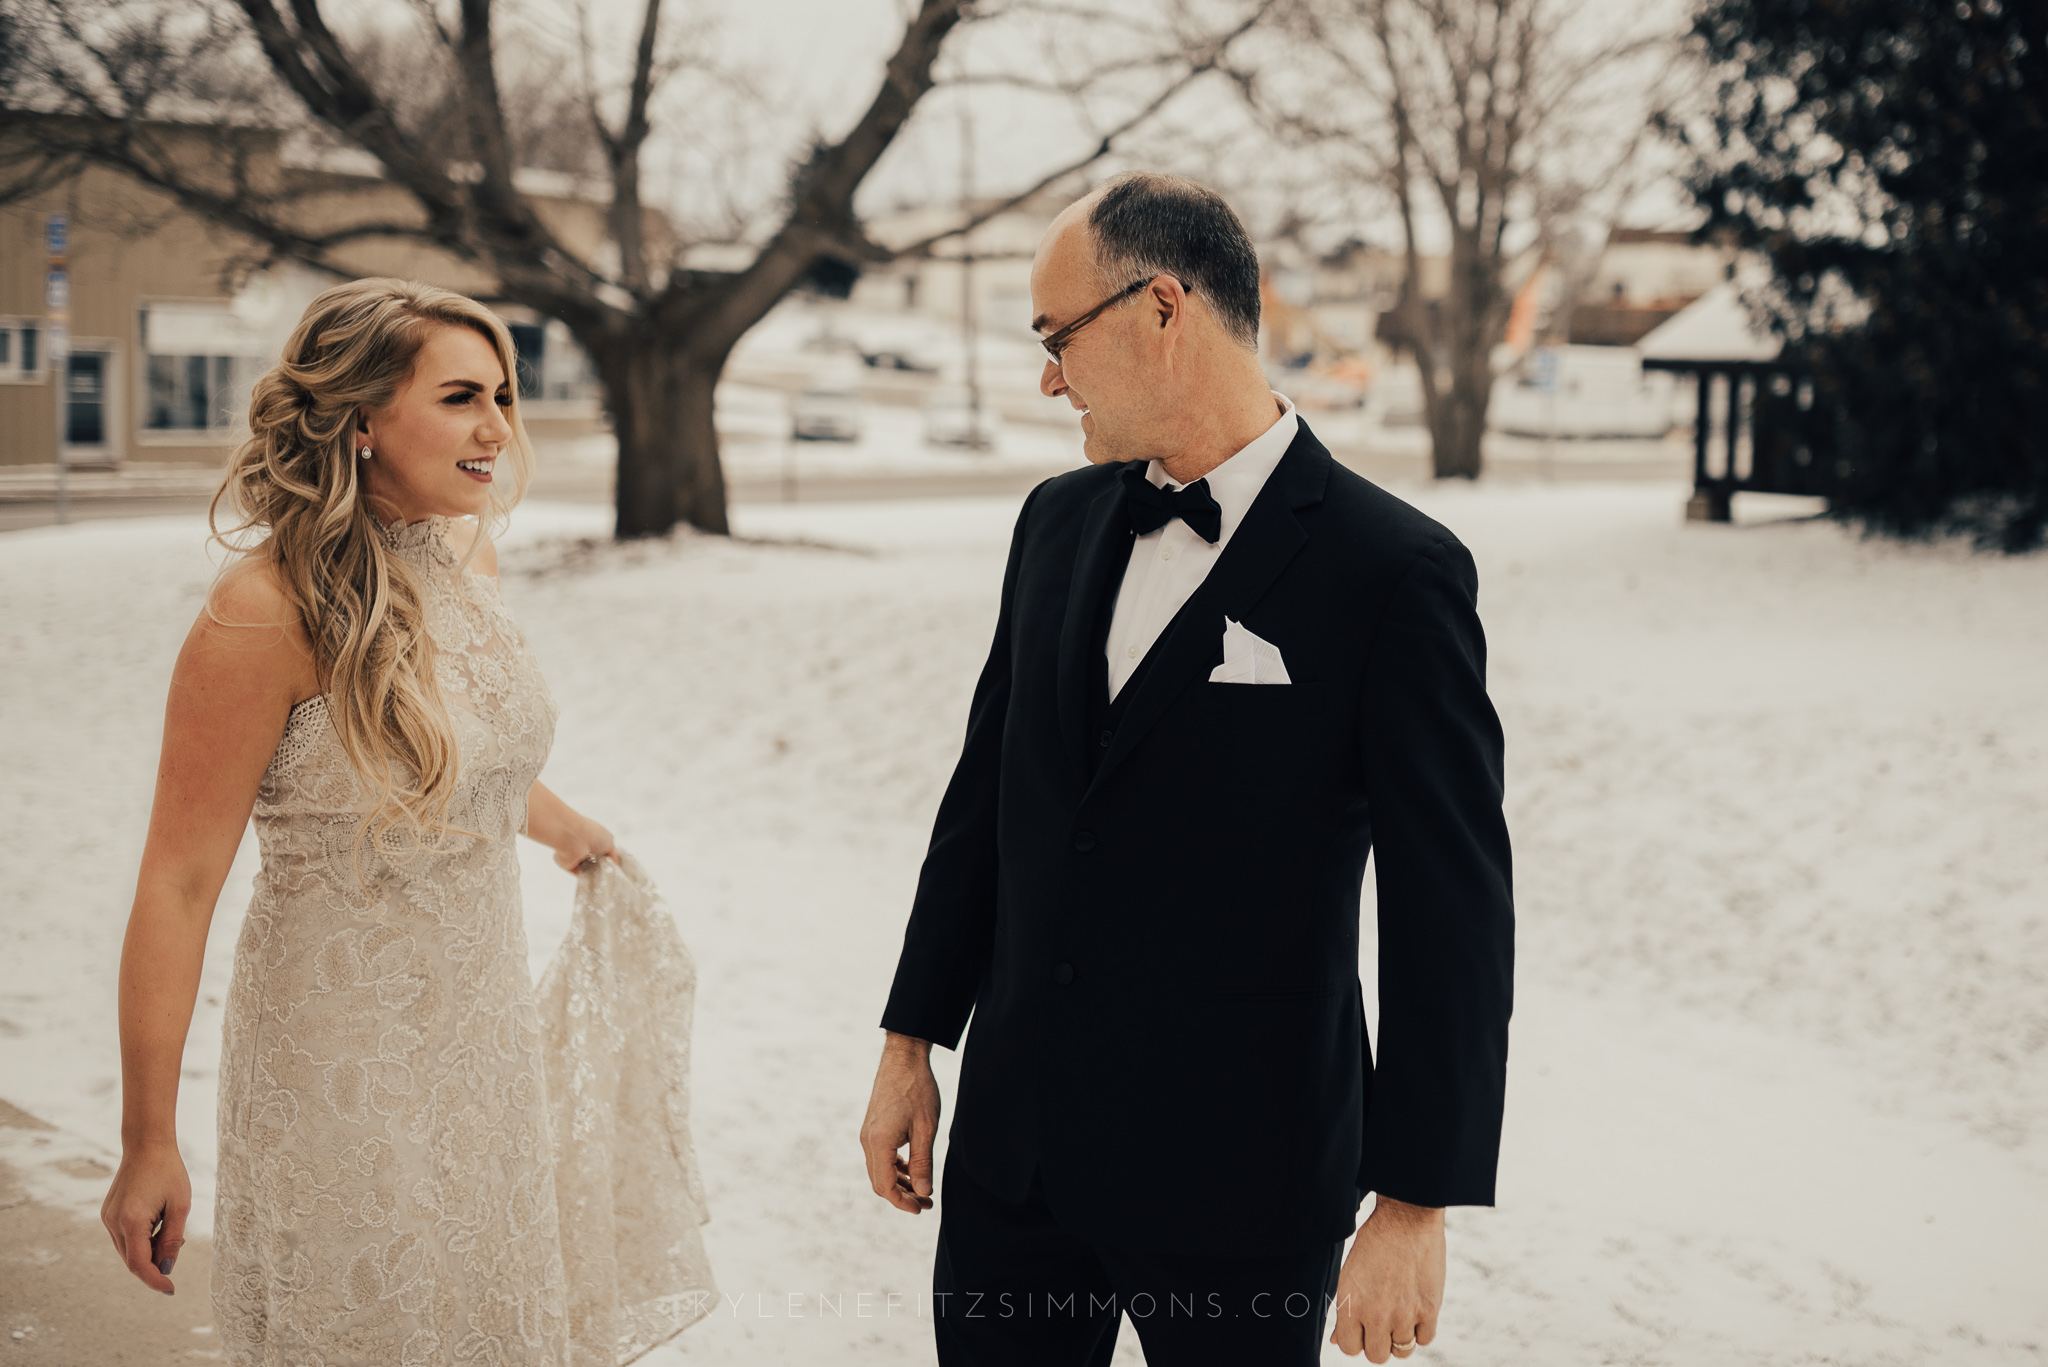 giannonatti-minnesota-winter-wedding-44.jpg